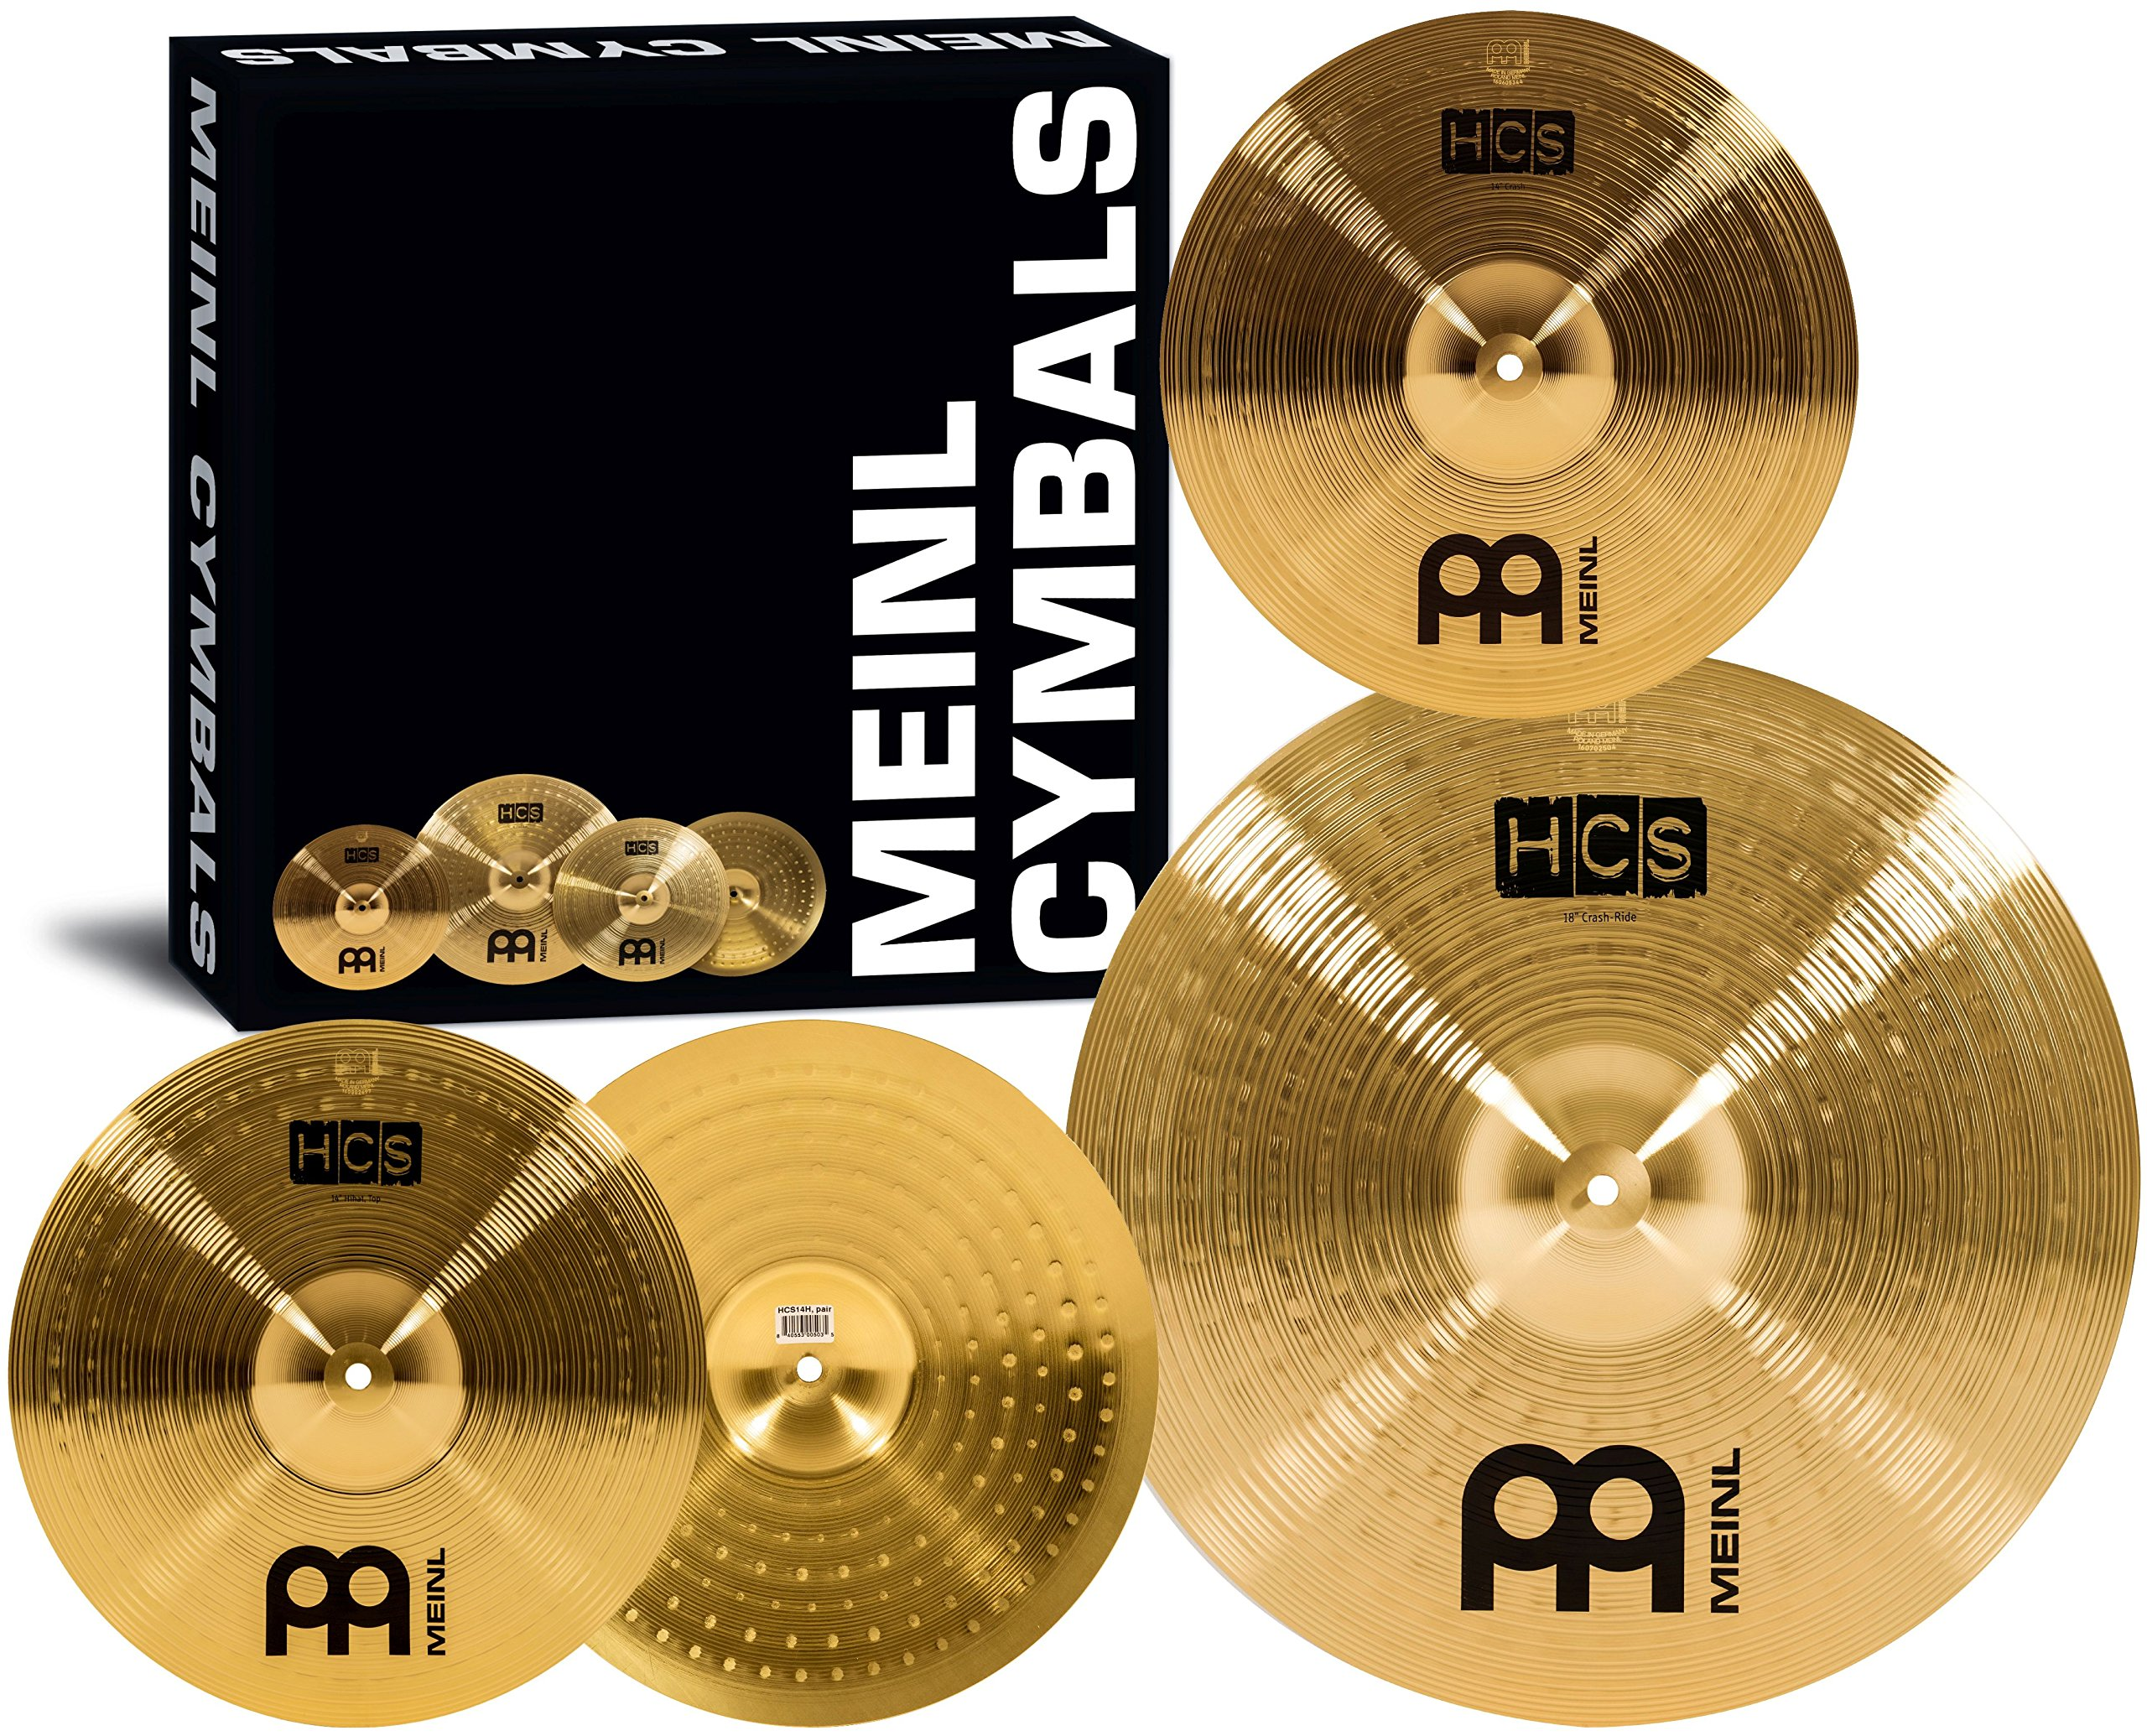 Meinl Cymbal Set Box Pack with 14'' Hihats, 18'' Crash/Ride, Plus a FREE 14'' Crash - HCS Traditional Finish Brass - Made In Germany, TWO-YEAR WARRANTY (HCS1418+14C) by Meinl Cymbals